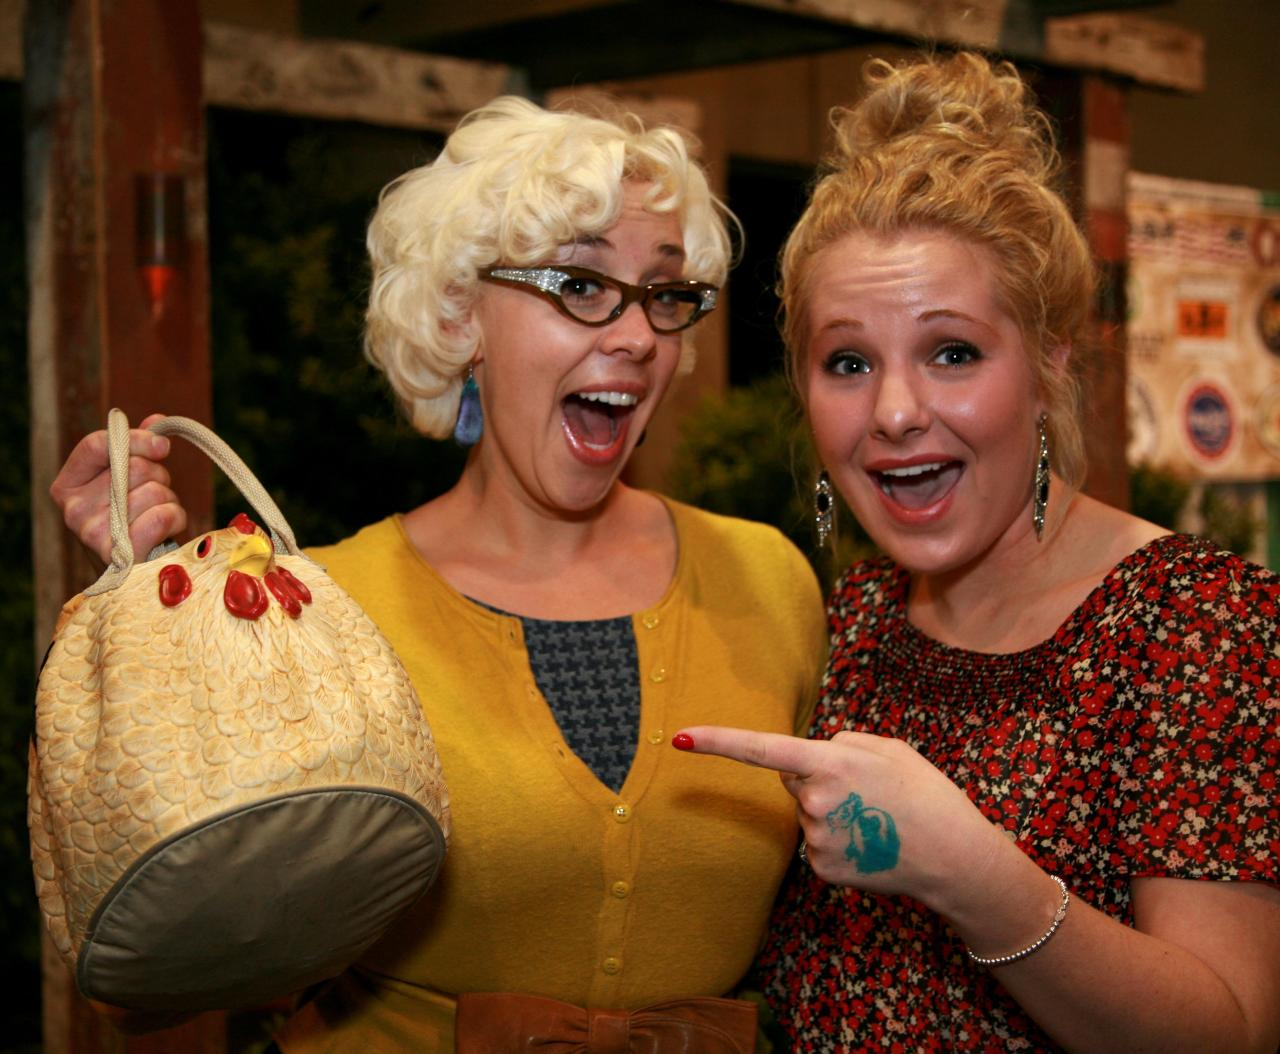 Okay. So Emily's handbag--I mean CLUCK-tch, was too darn cute! I just could not wait until her interview post to share  it with y'all. The VIP so needs a CLUCK-tch *wink*